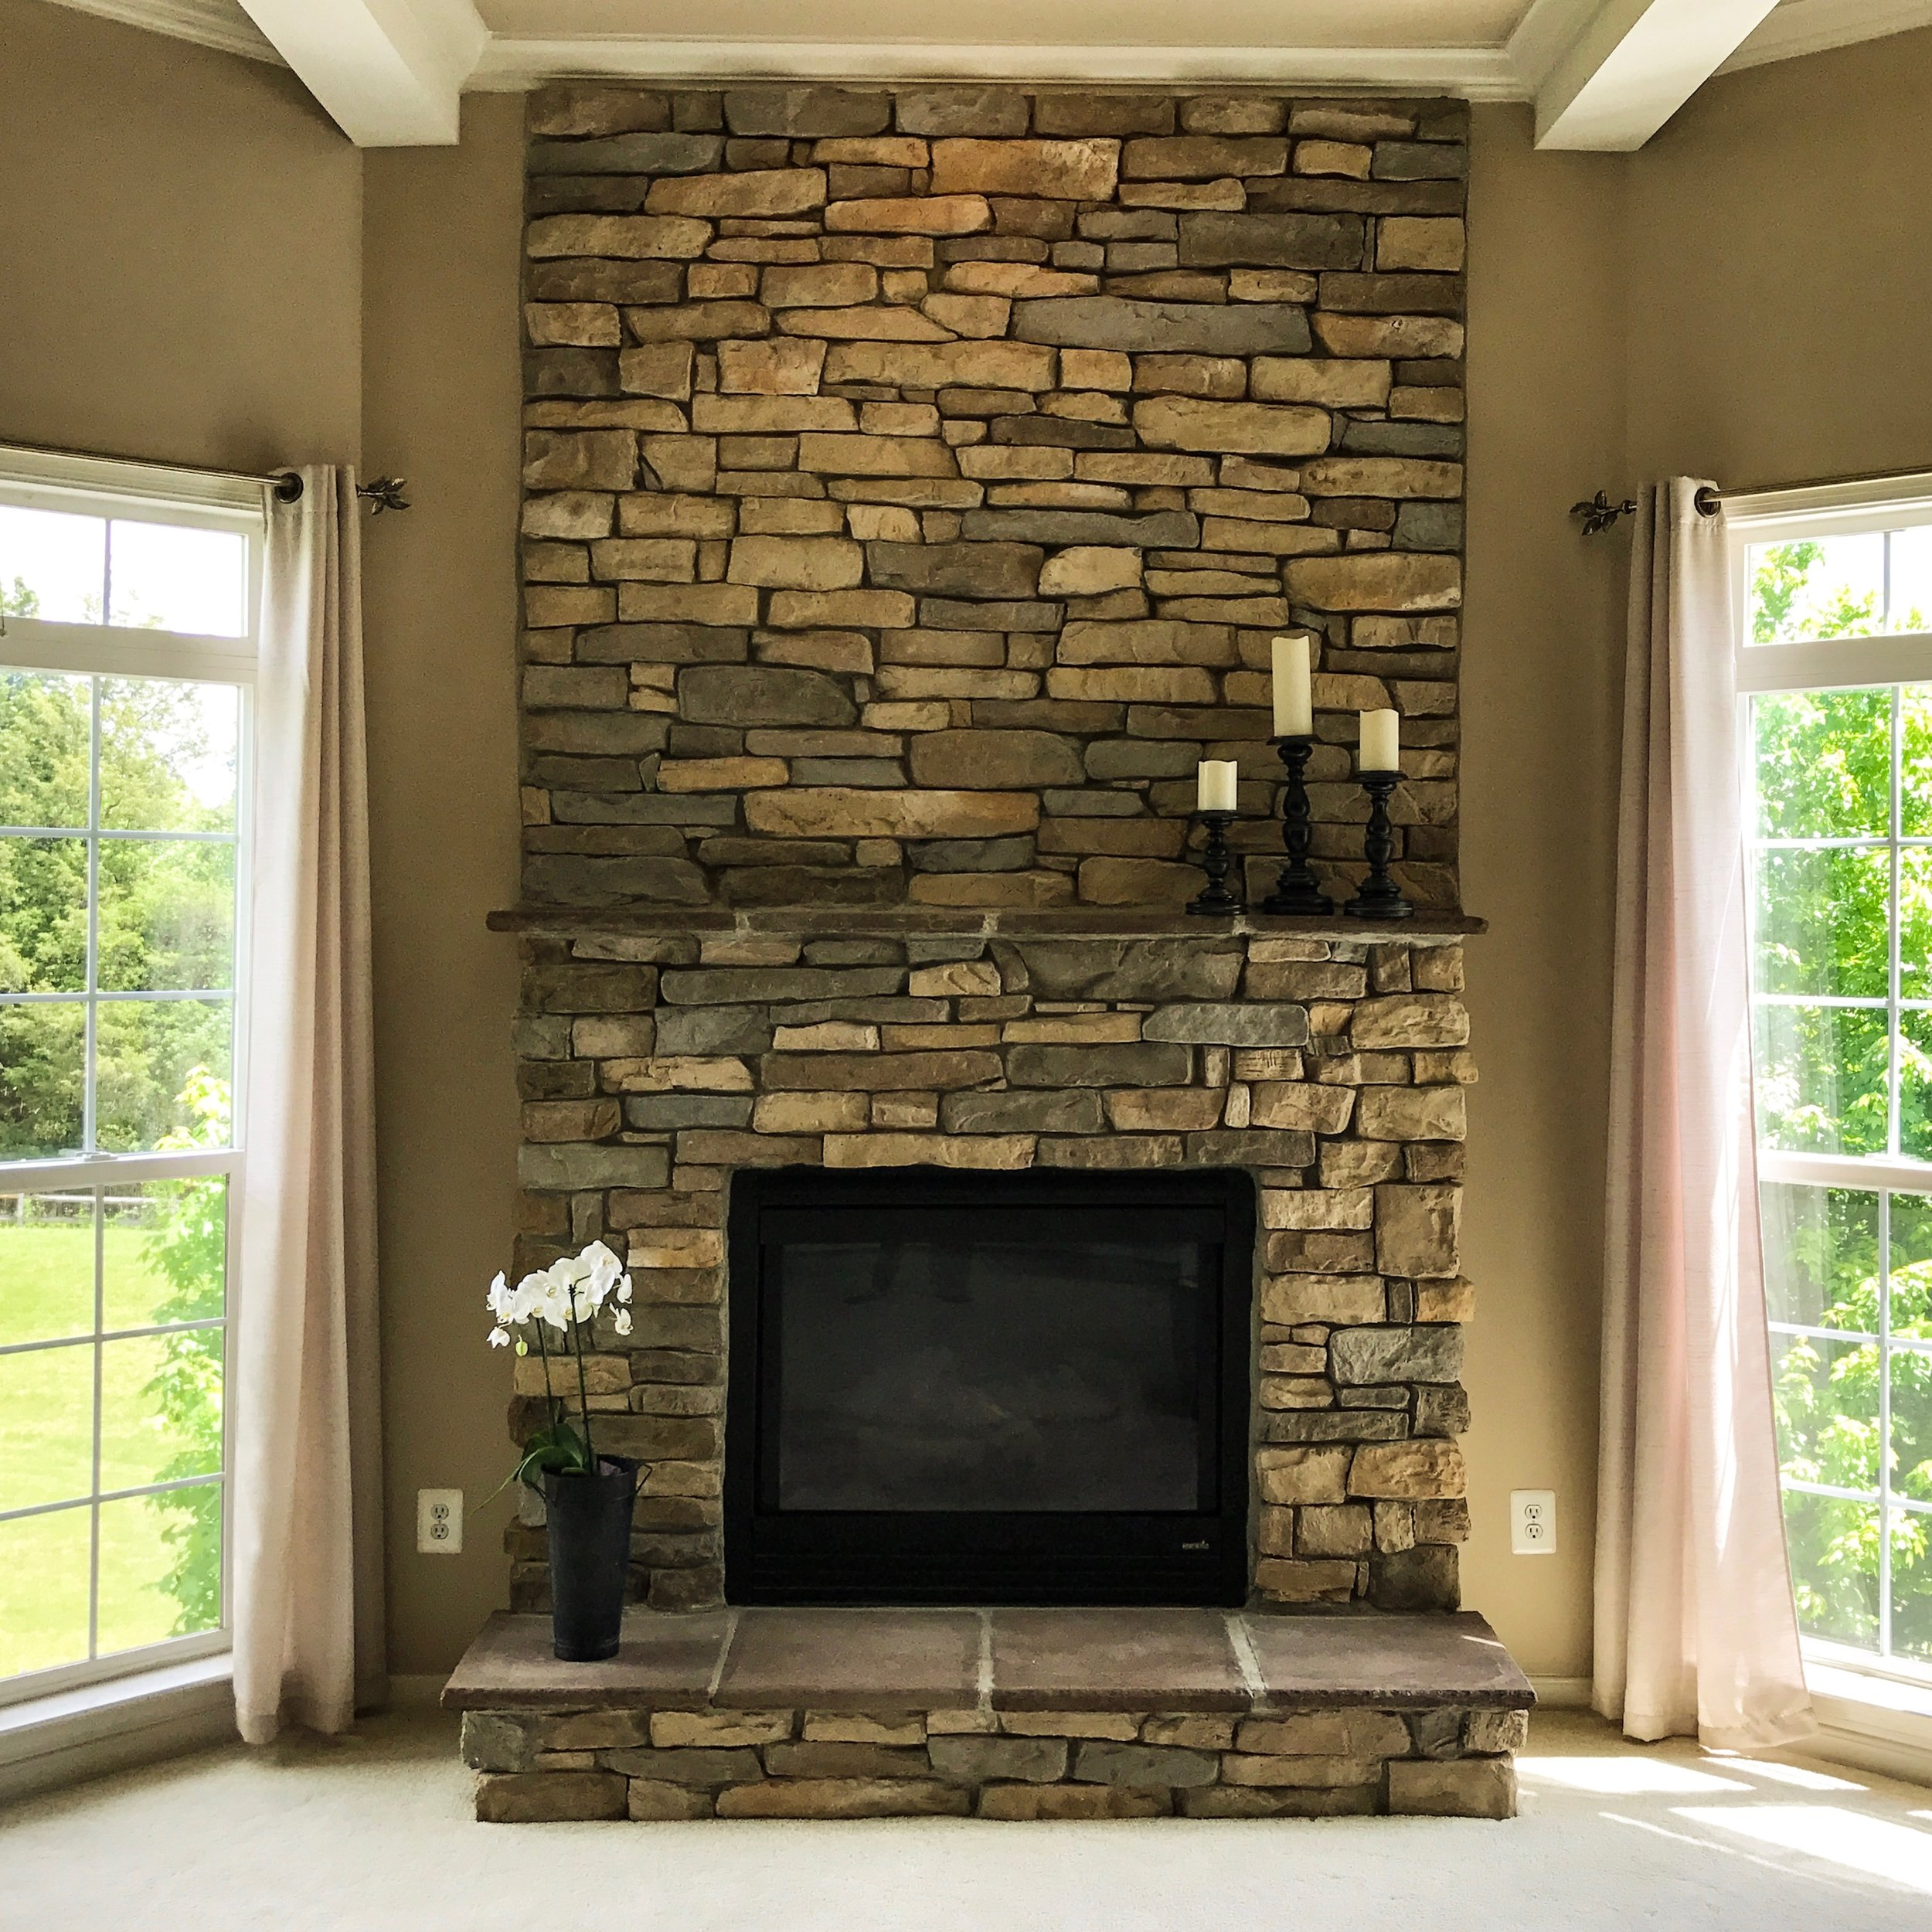 Ideal fireplace